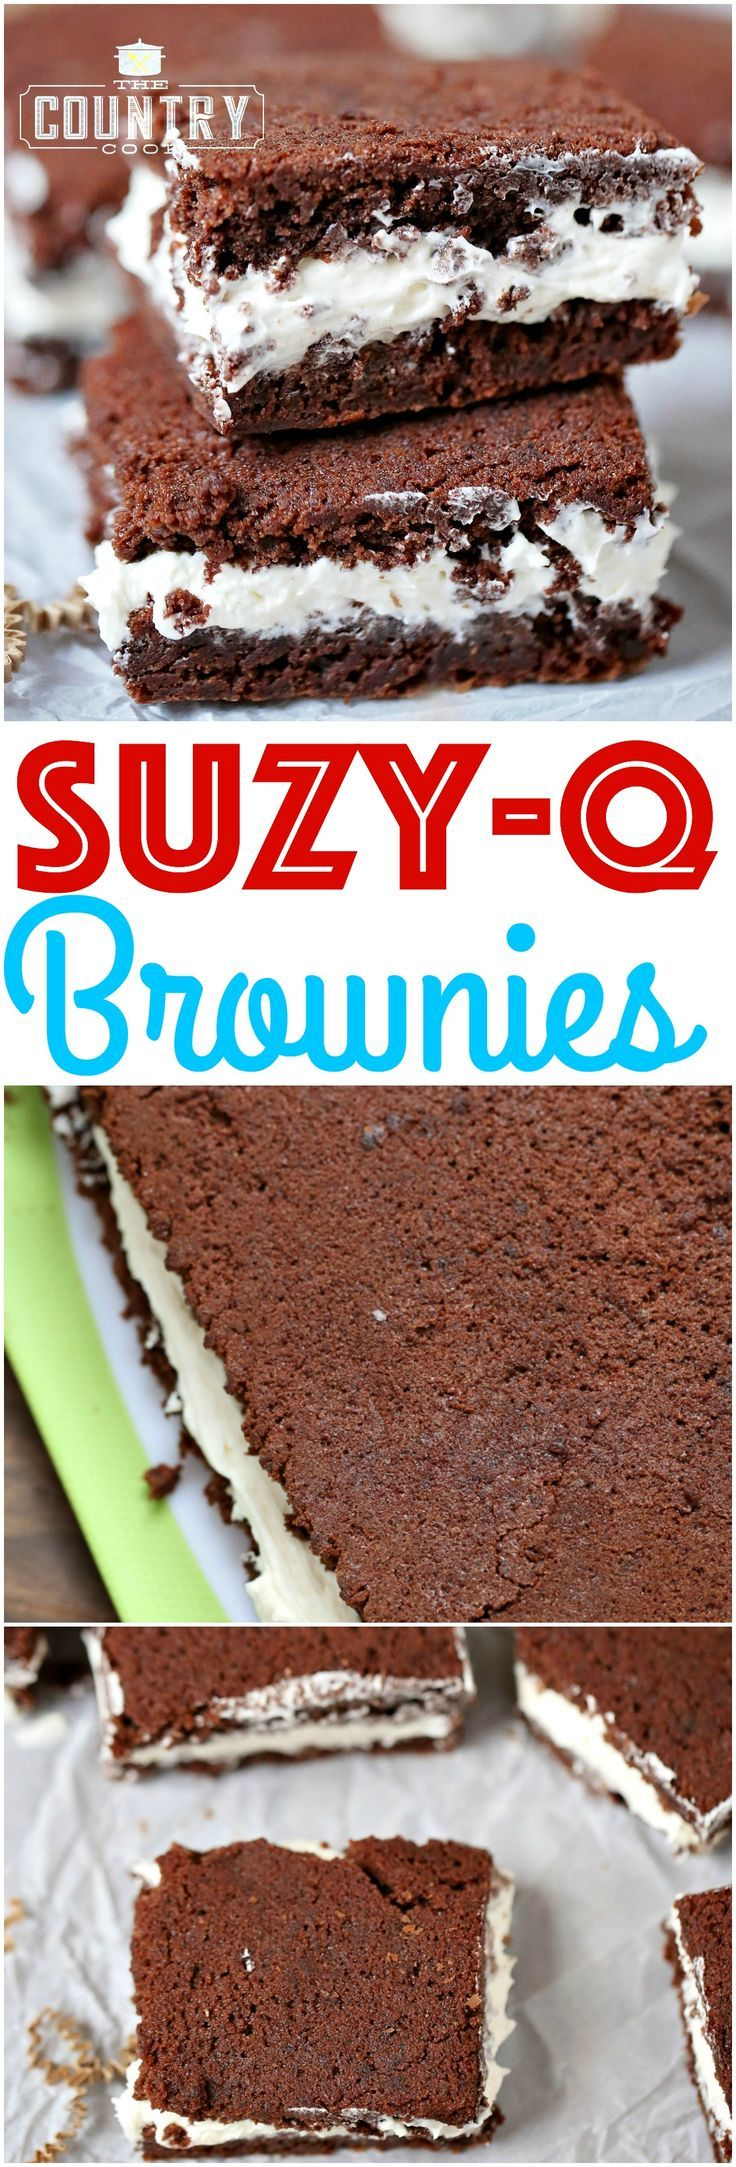 Suzy-Q Brownies is just like those favorite Hostess treats - only better. The creamy marshmallow filling is amazing! So good!